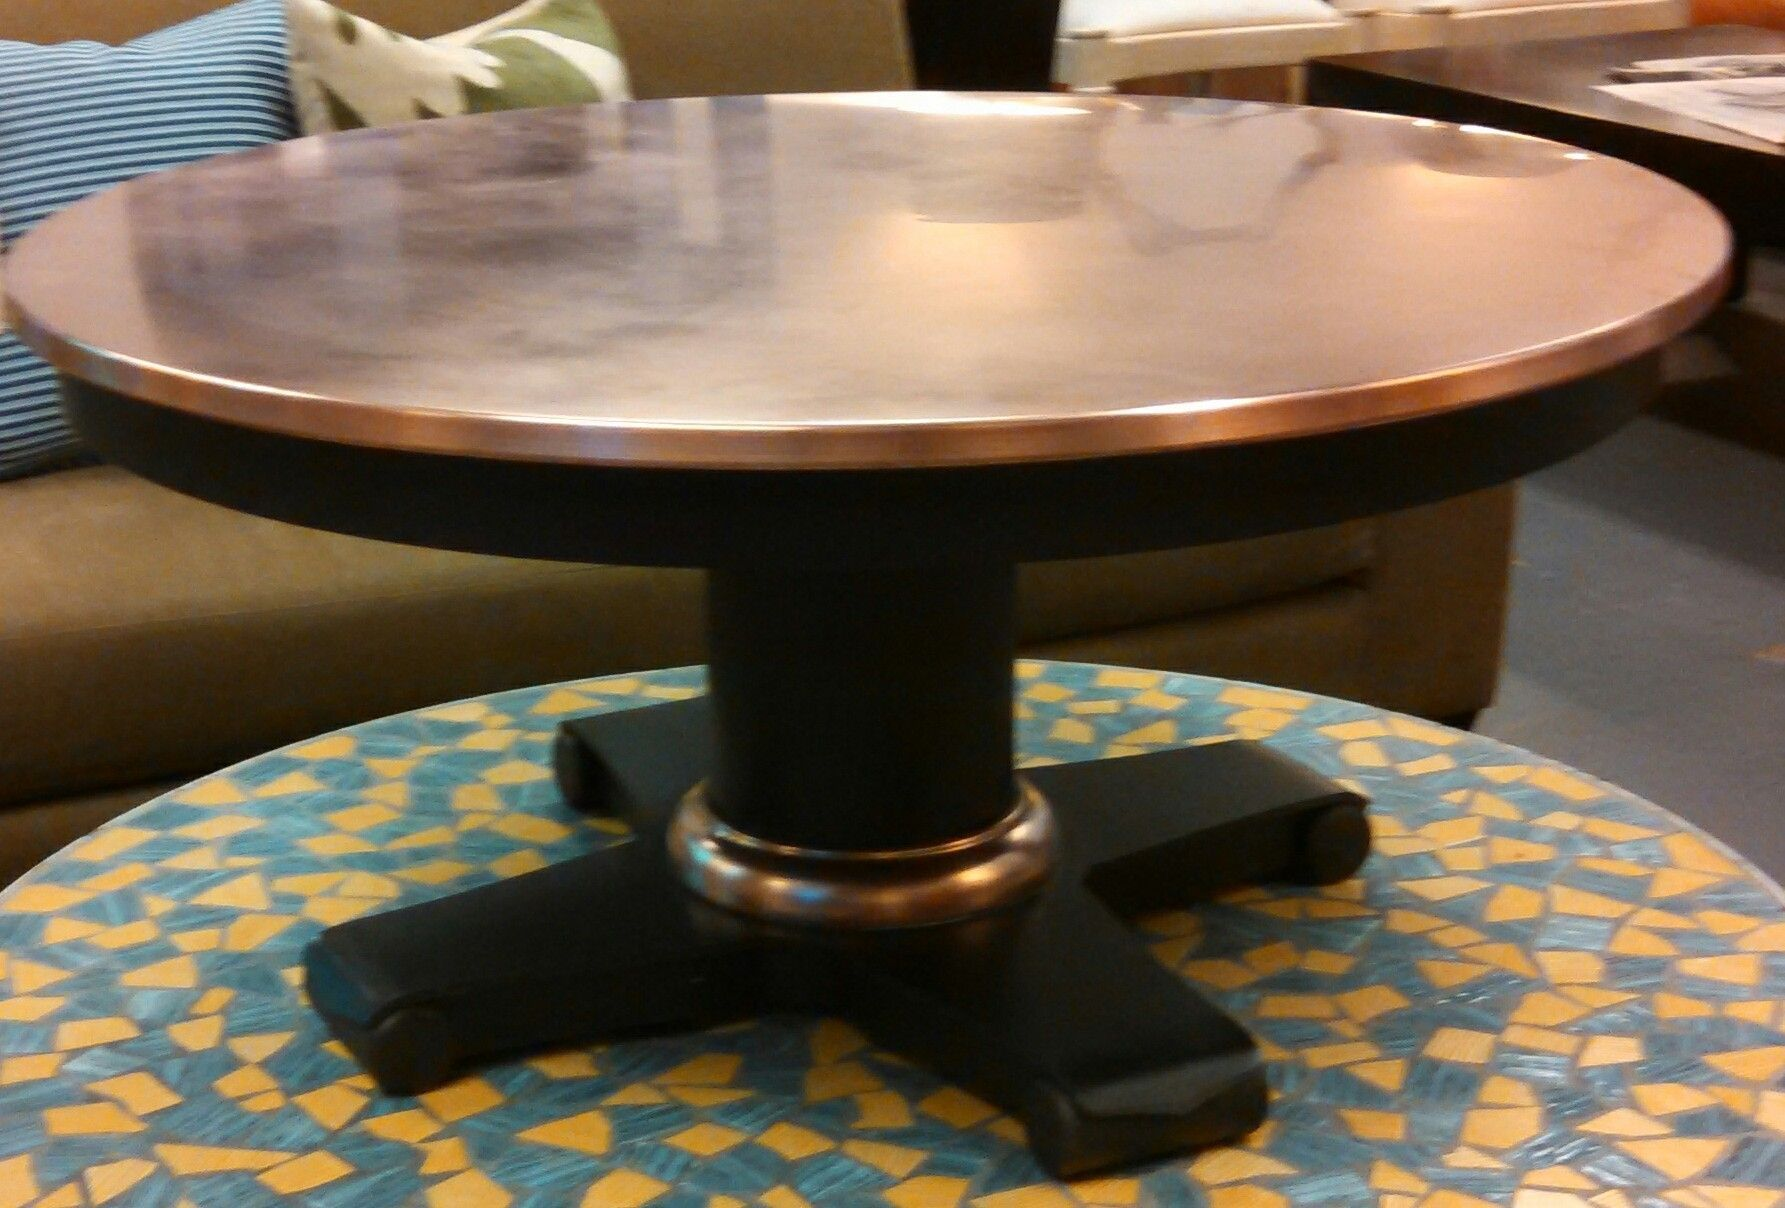 13 Copper Top Coffee Table Crate And Barrel Pics